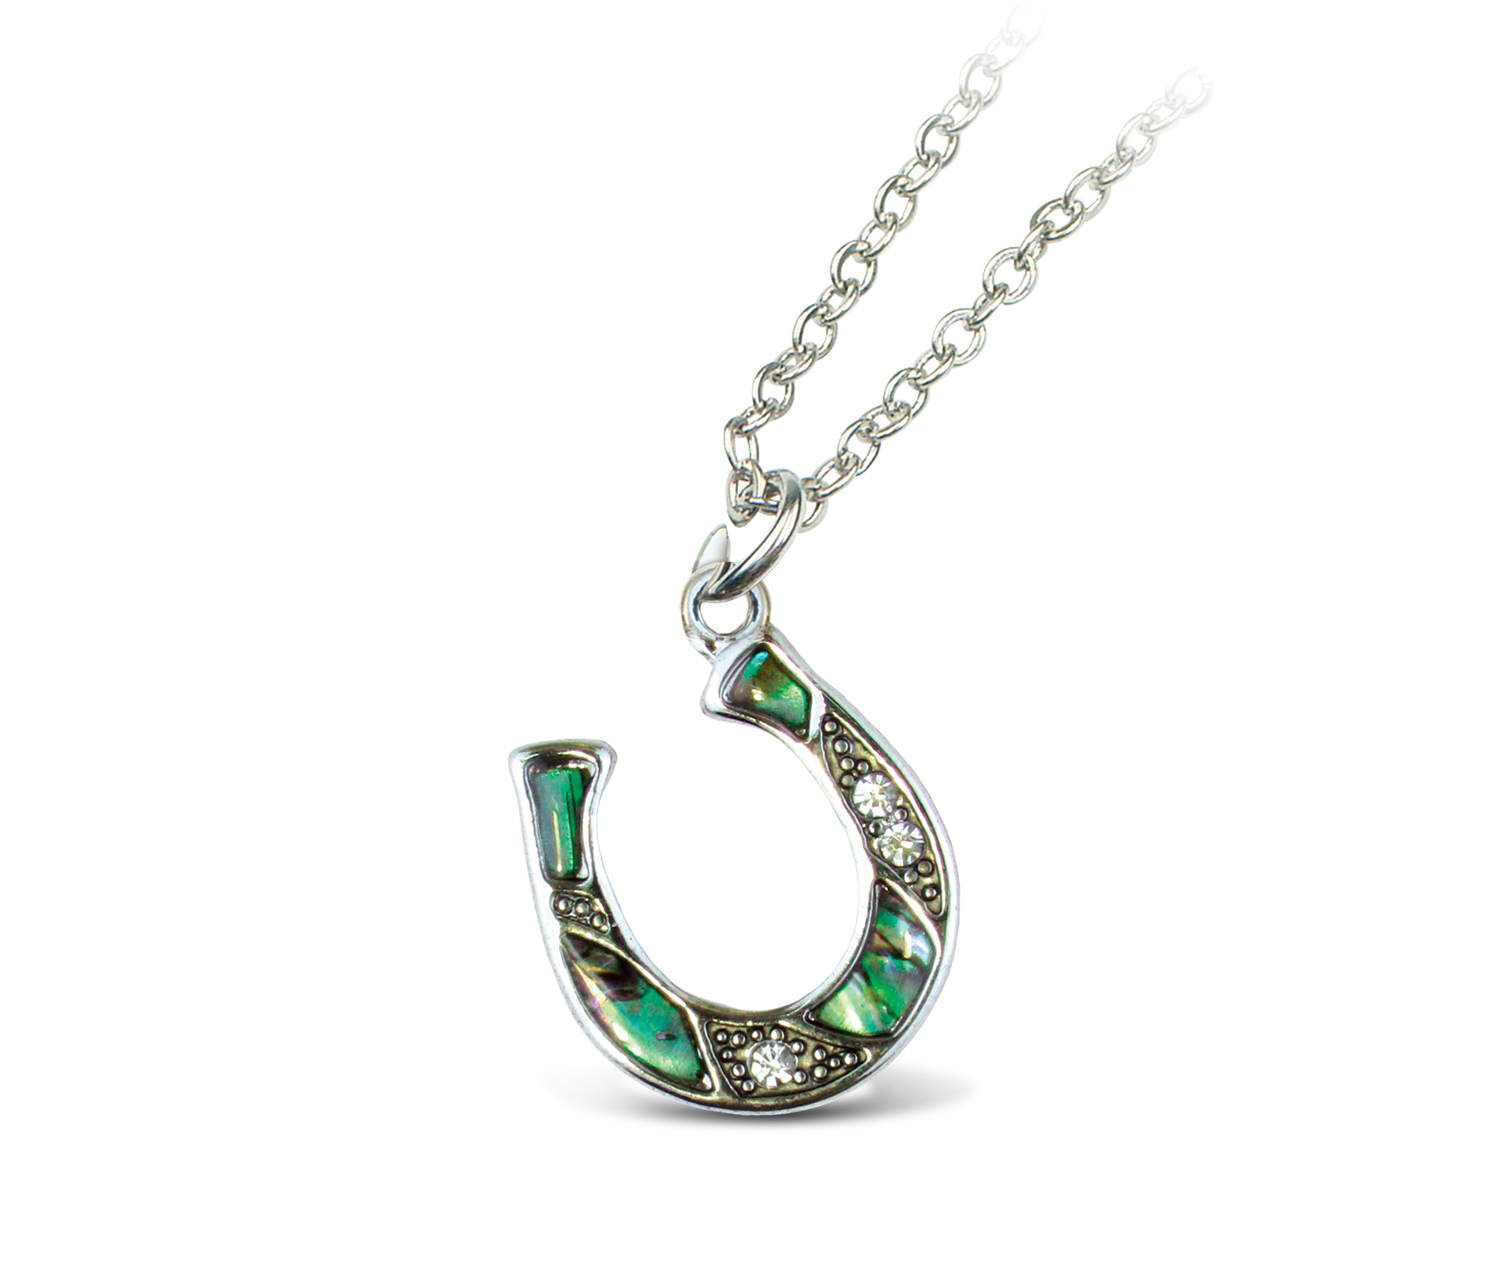 Necklace Link Style Chain 18 Inch - Natural Paua - Horse SHOE - Aqua Jewelry